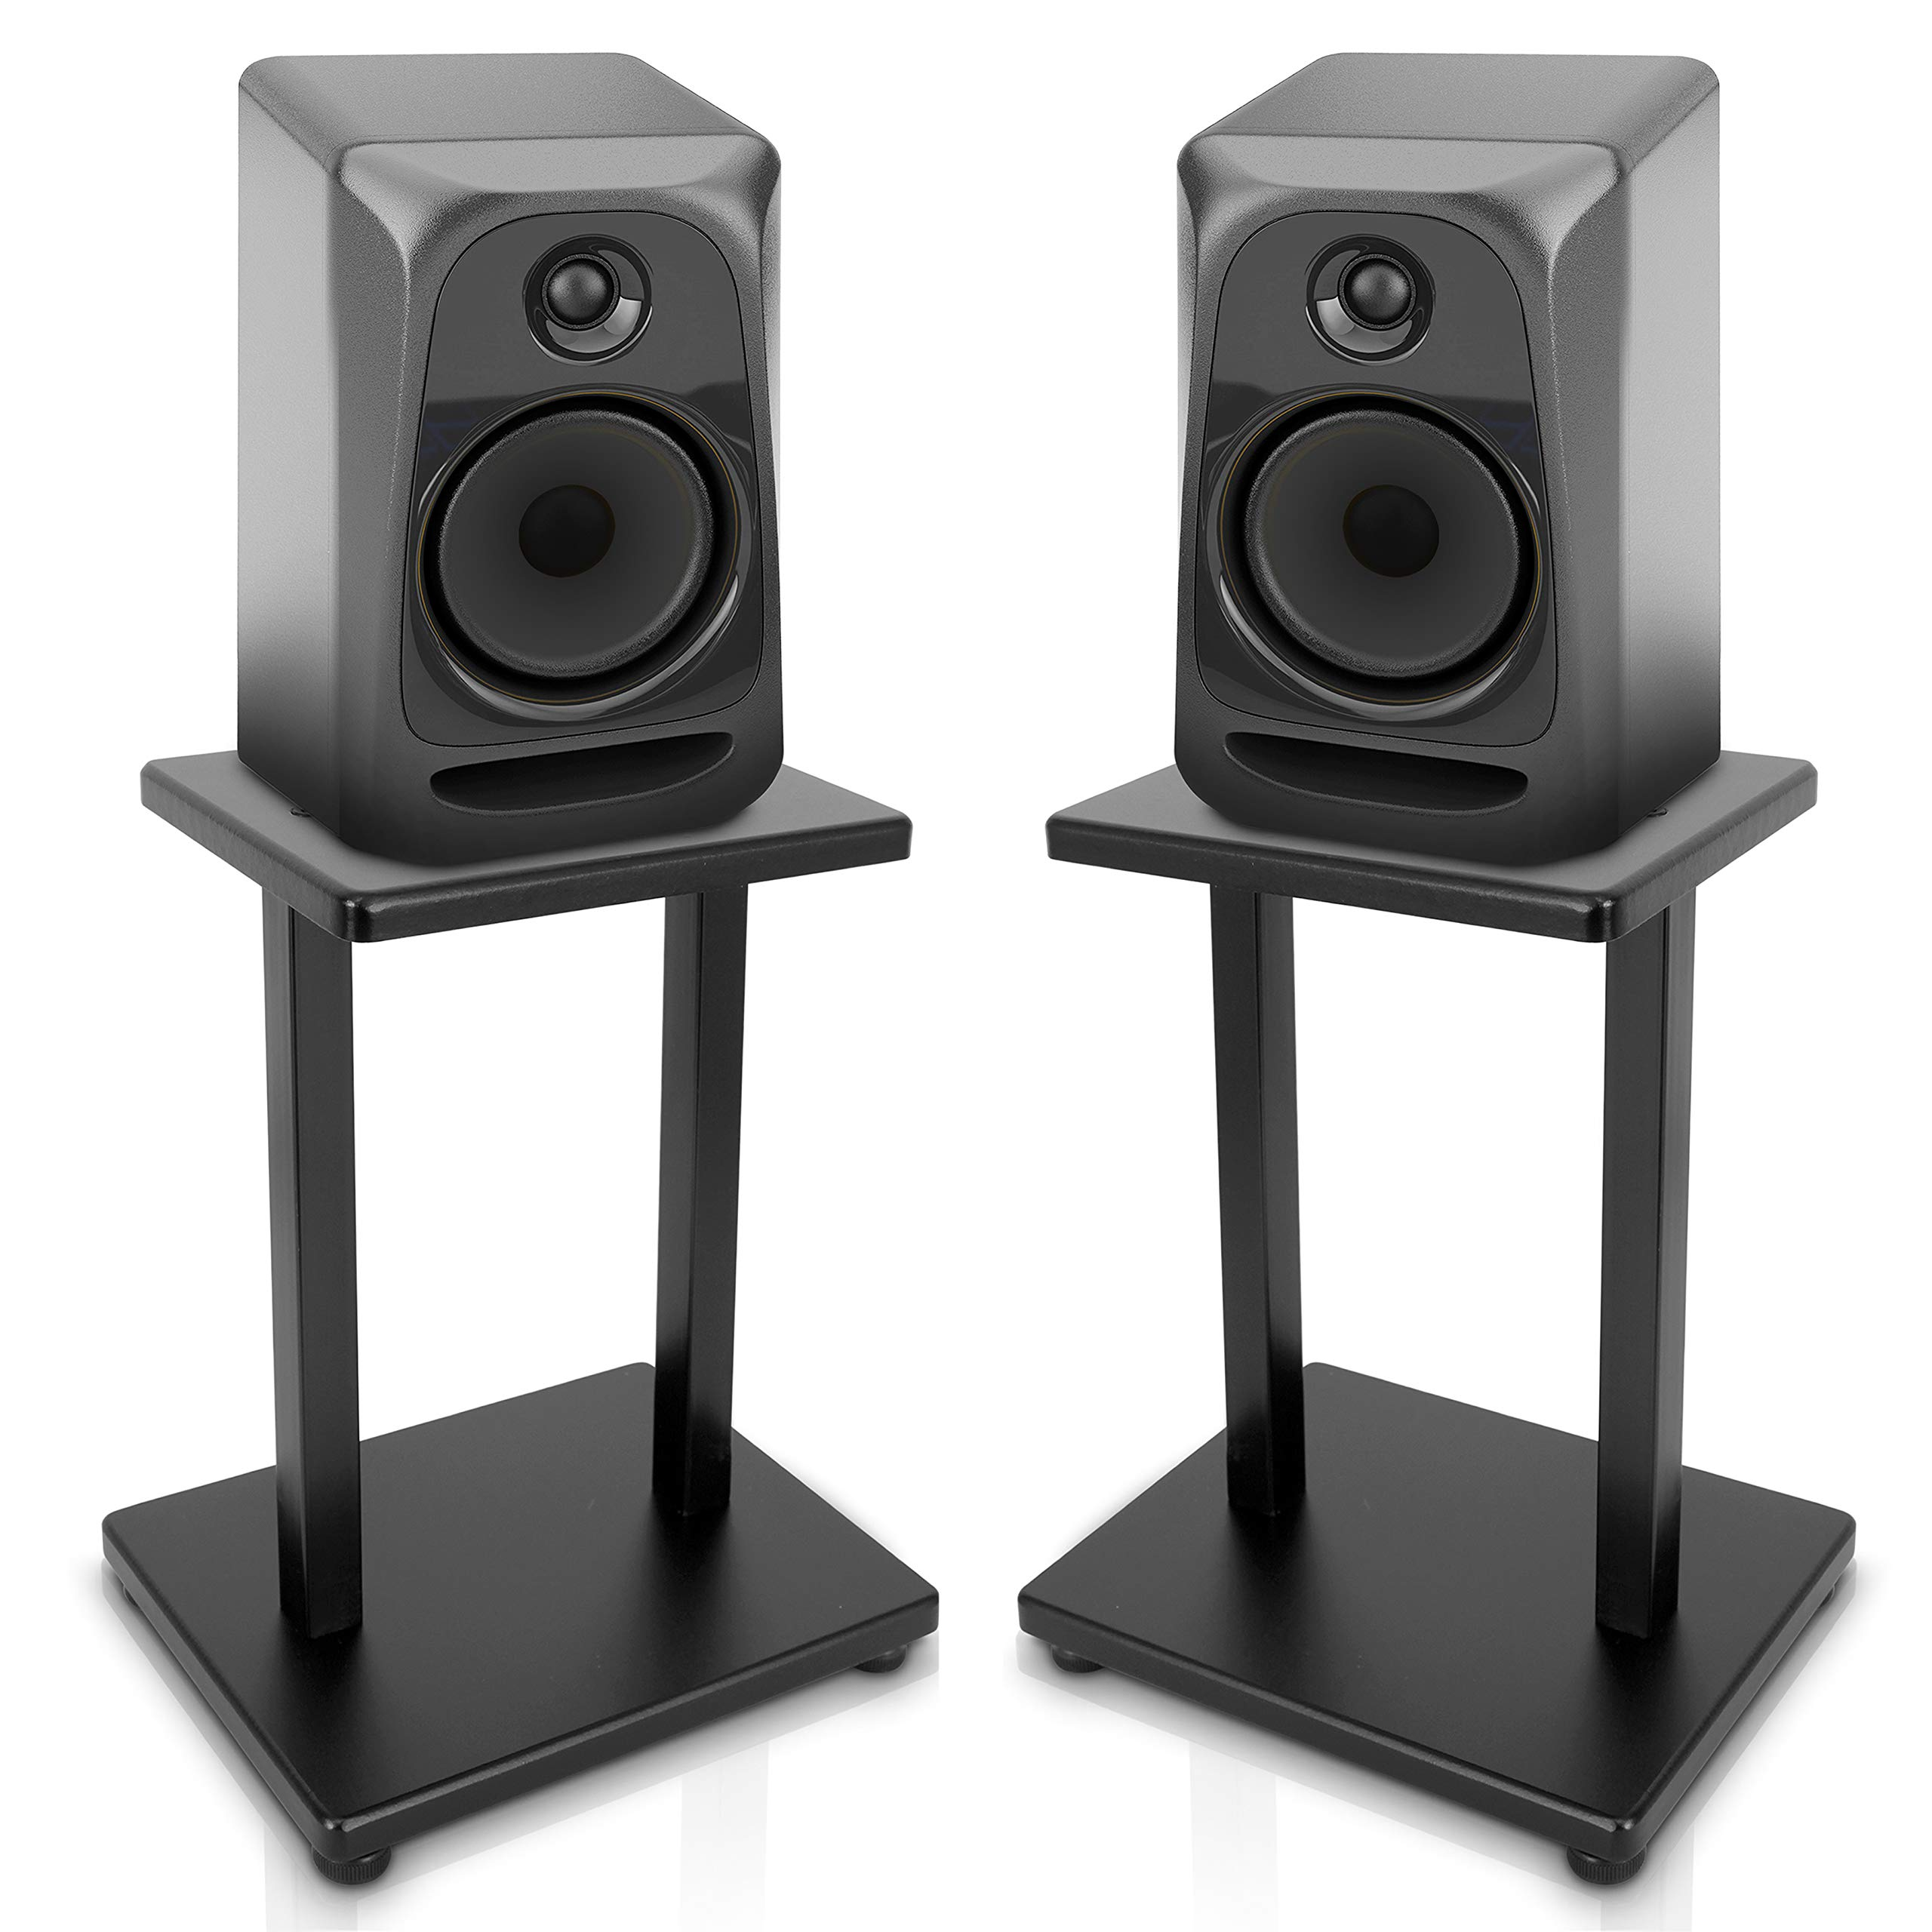 13'' Surround Sound Speaker Stands - Pro Audio Universal Heavy Duty Steel Base Top Plates w/Adjustable Base Screws - for Home System, Bookshelf, Monitor, Satellite Speakers - Pyle PSTND18.5 (Pair)